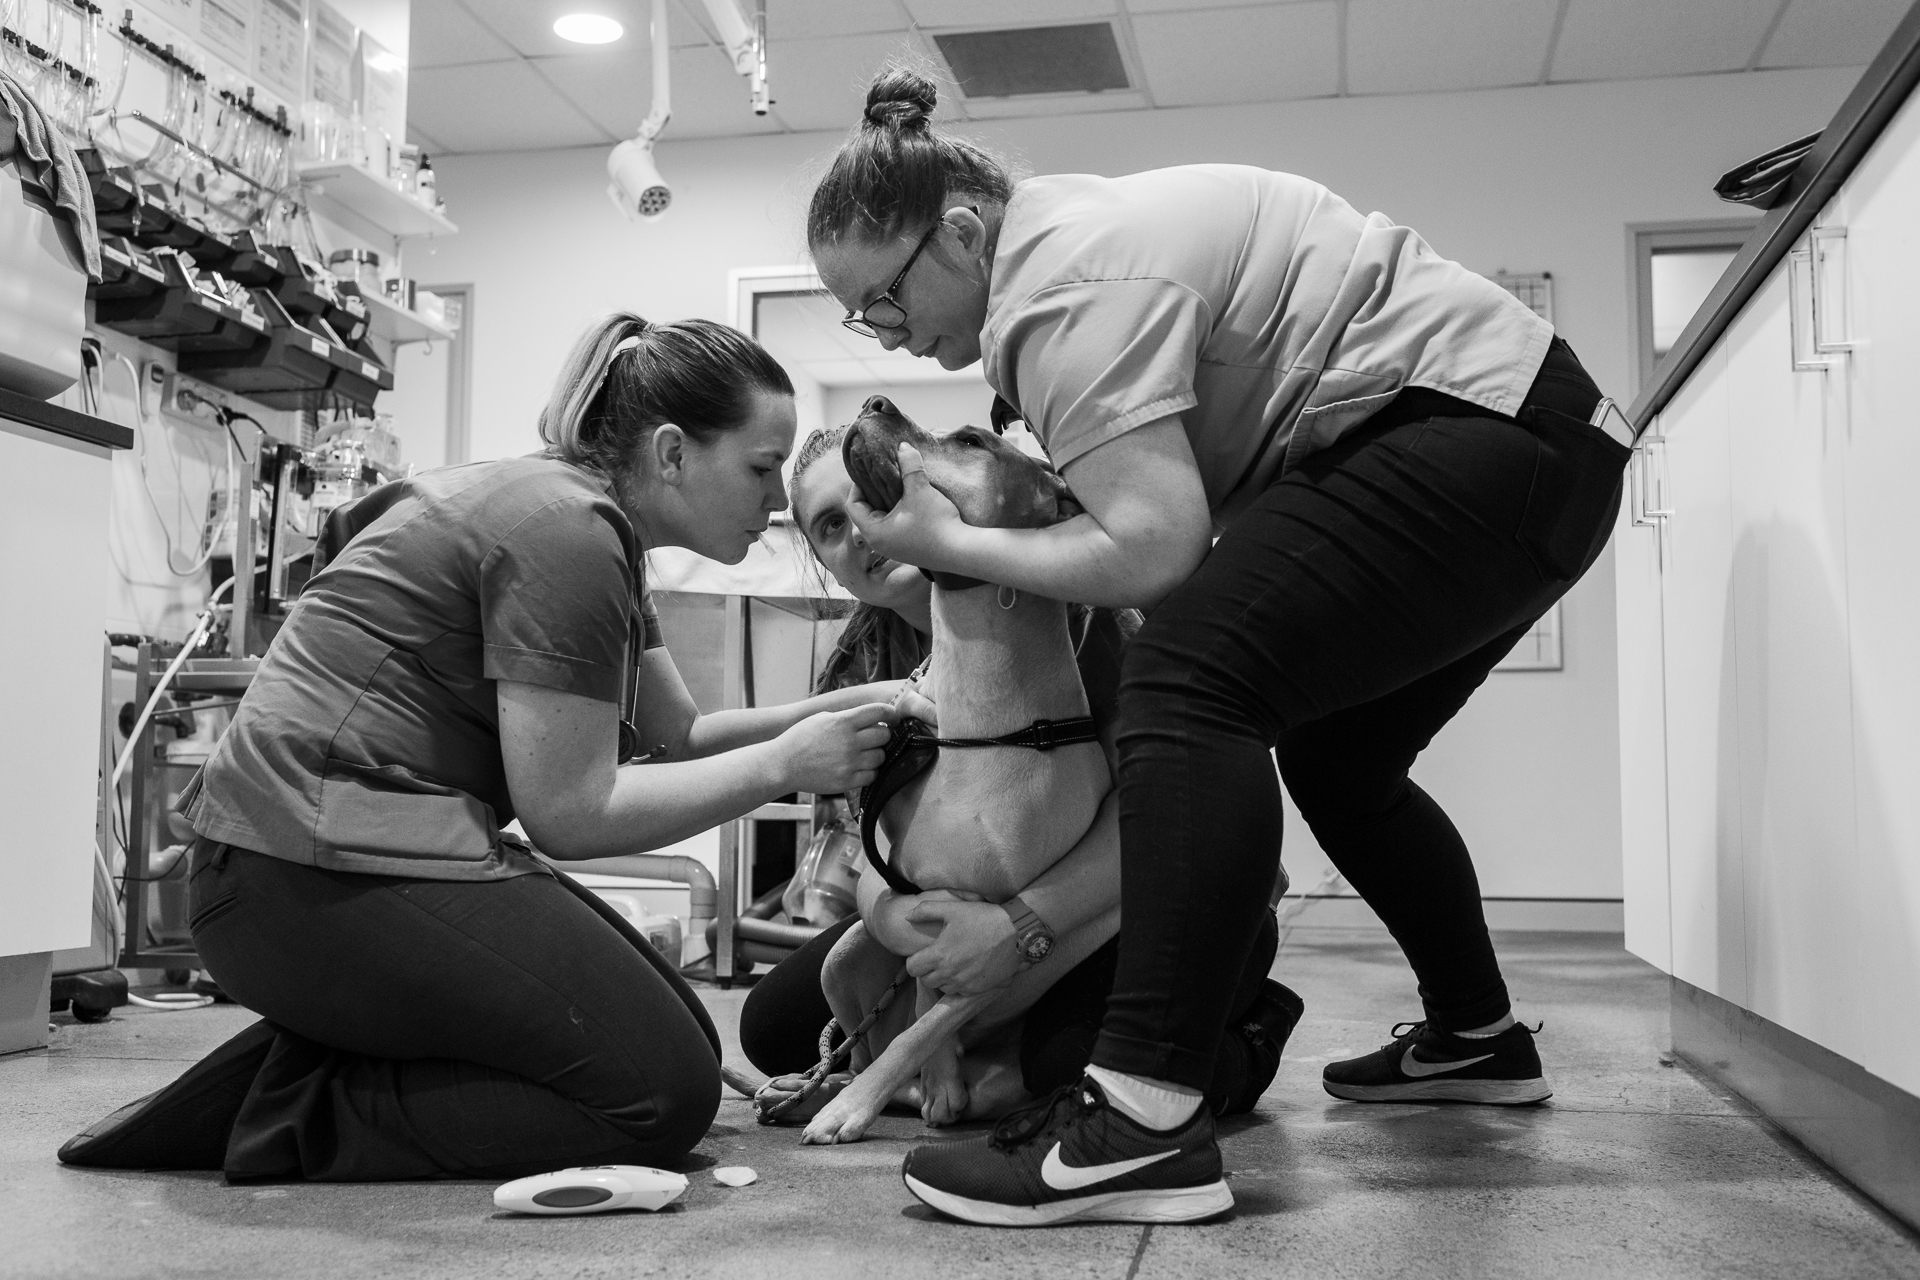 Firmly, gently. Trainee Nurse Claire Goodlock ( middle ) holds Peanut around the chest. Nurse Kelsey Savage ( right ) restrains his head while blowing on it tries to distract him by blowing on his head, Dr Jessica Winsall attempts to draw blood. It's all about trying to safely extract blood from a fidgety animal.  9 February, 2018.